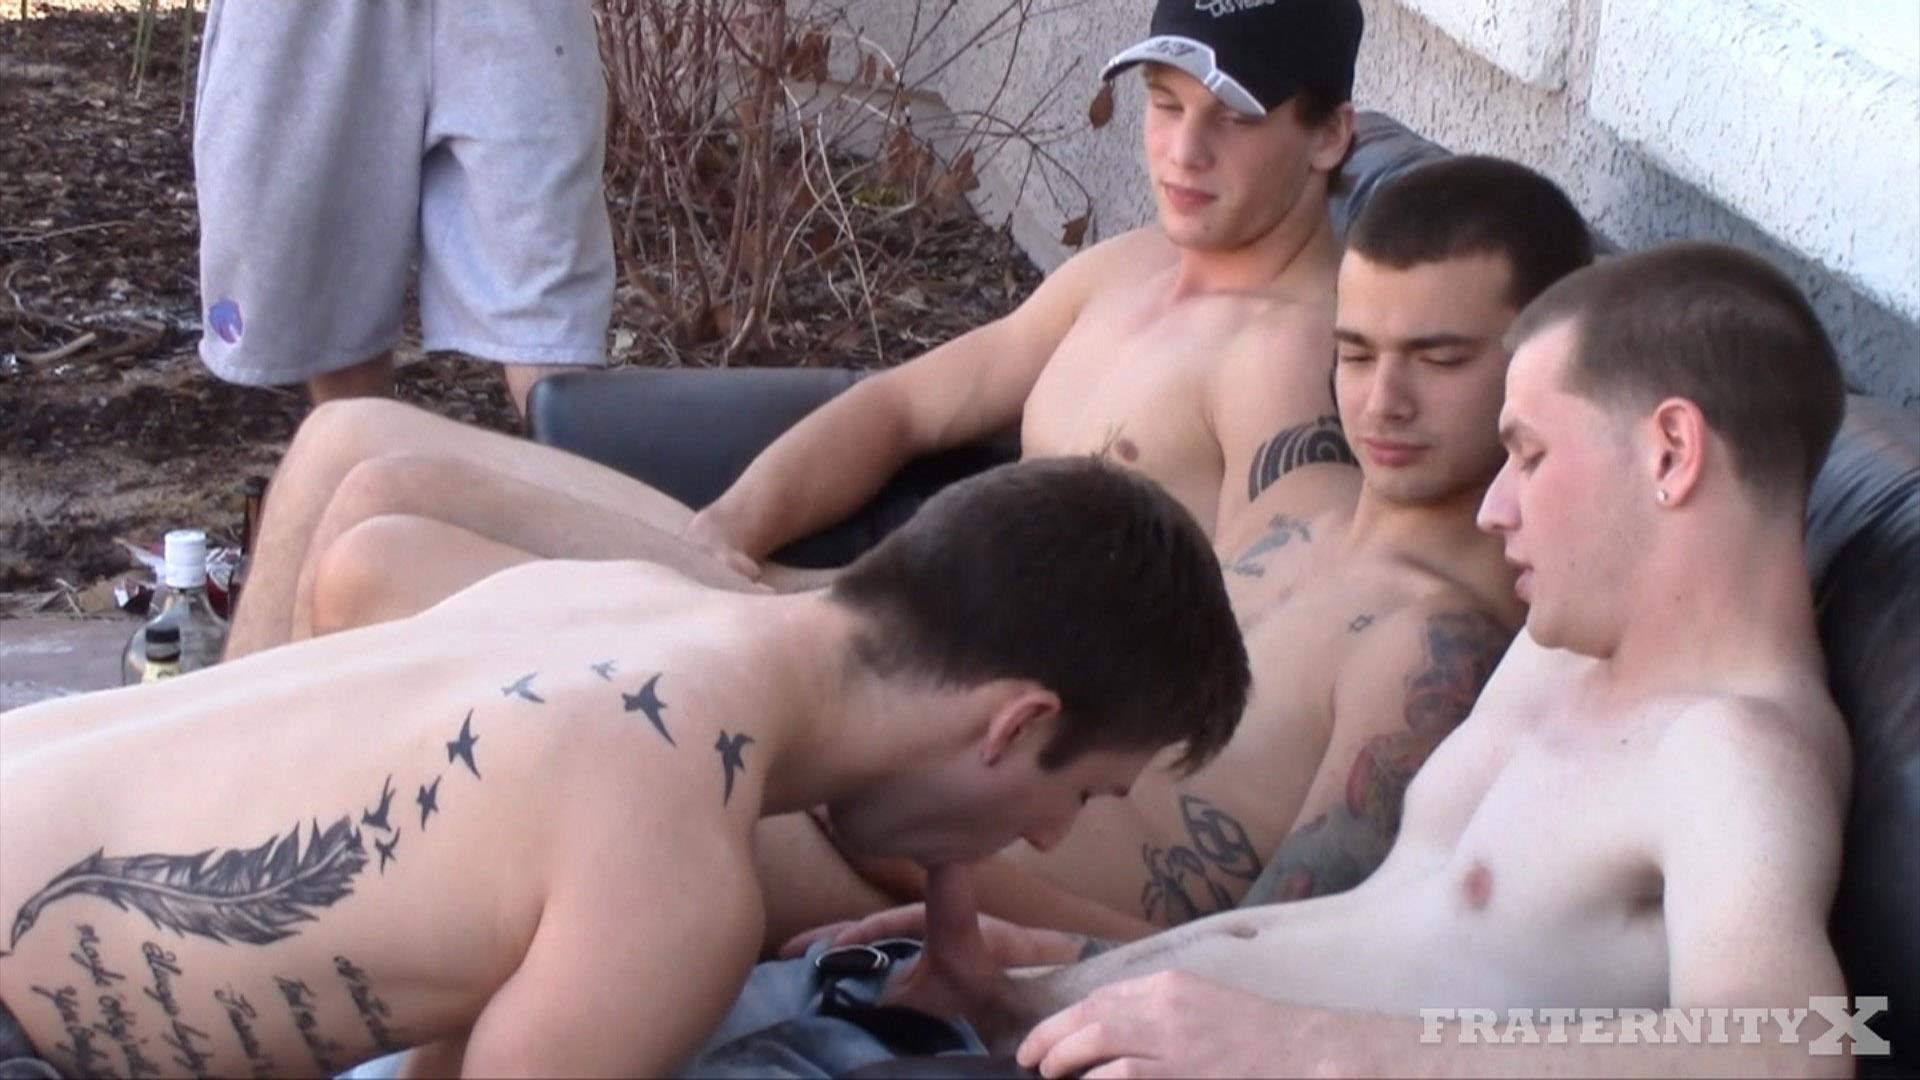 Fraternity-X-Frenchy-Naked-Frat-Guys-Barebacking-Outside-Big-Dicks-Amateur-Gay-Porn-02 Fraternity Boys Fucking Bareback Outside On The Frat Patio